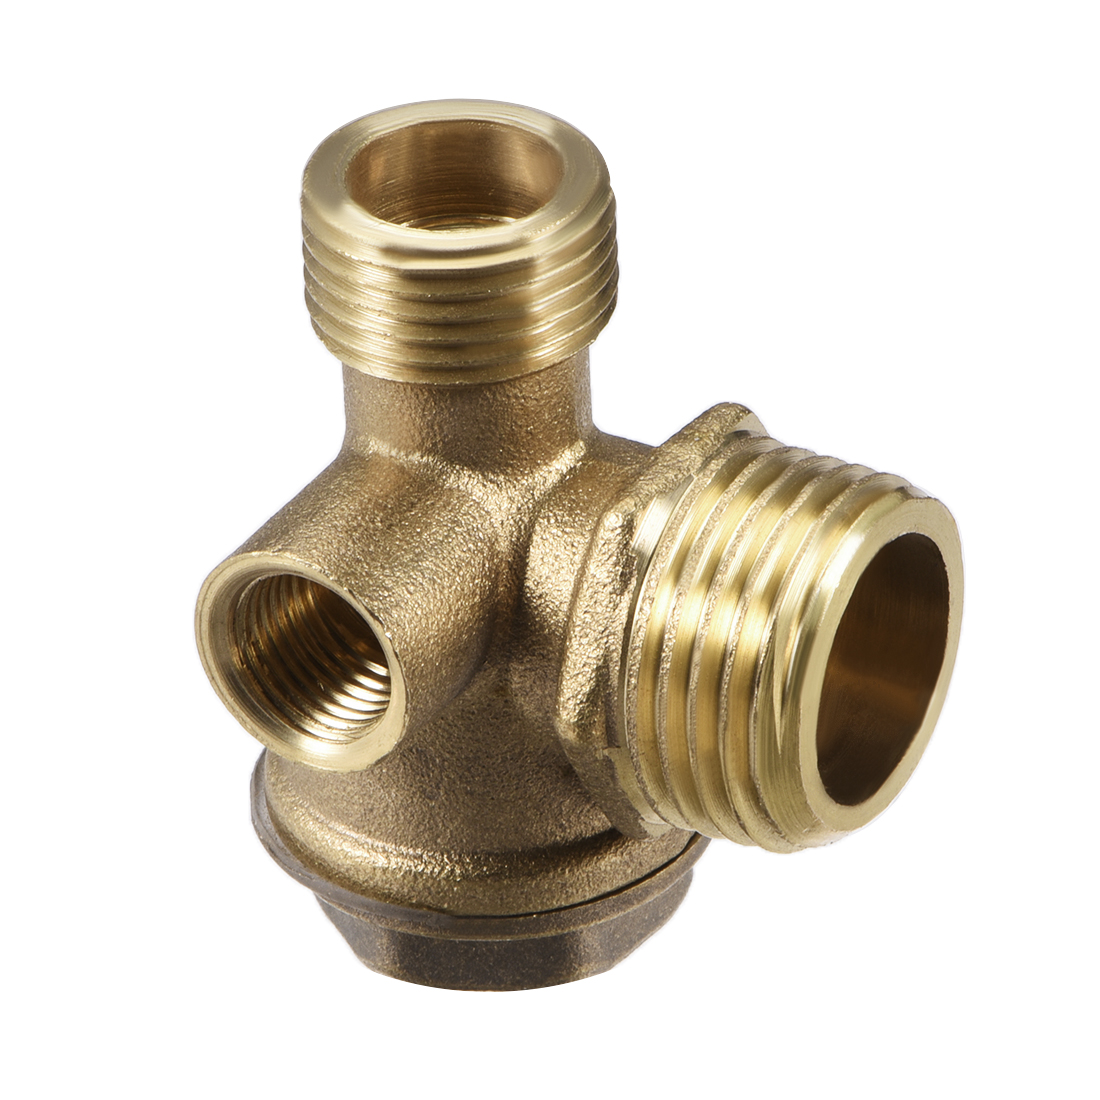 "Air Compressor Check Valve Right Female Threaded Brass 1/8"" x 3/8"" x 1/2"" 3Pcs - image 2 of 3"